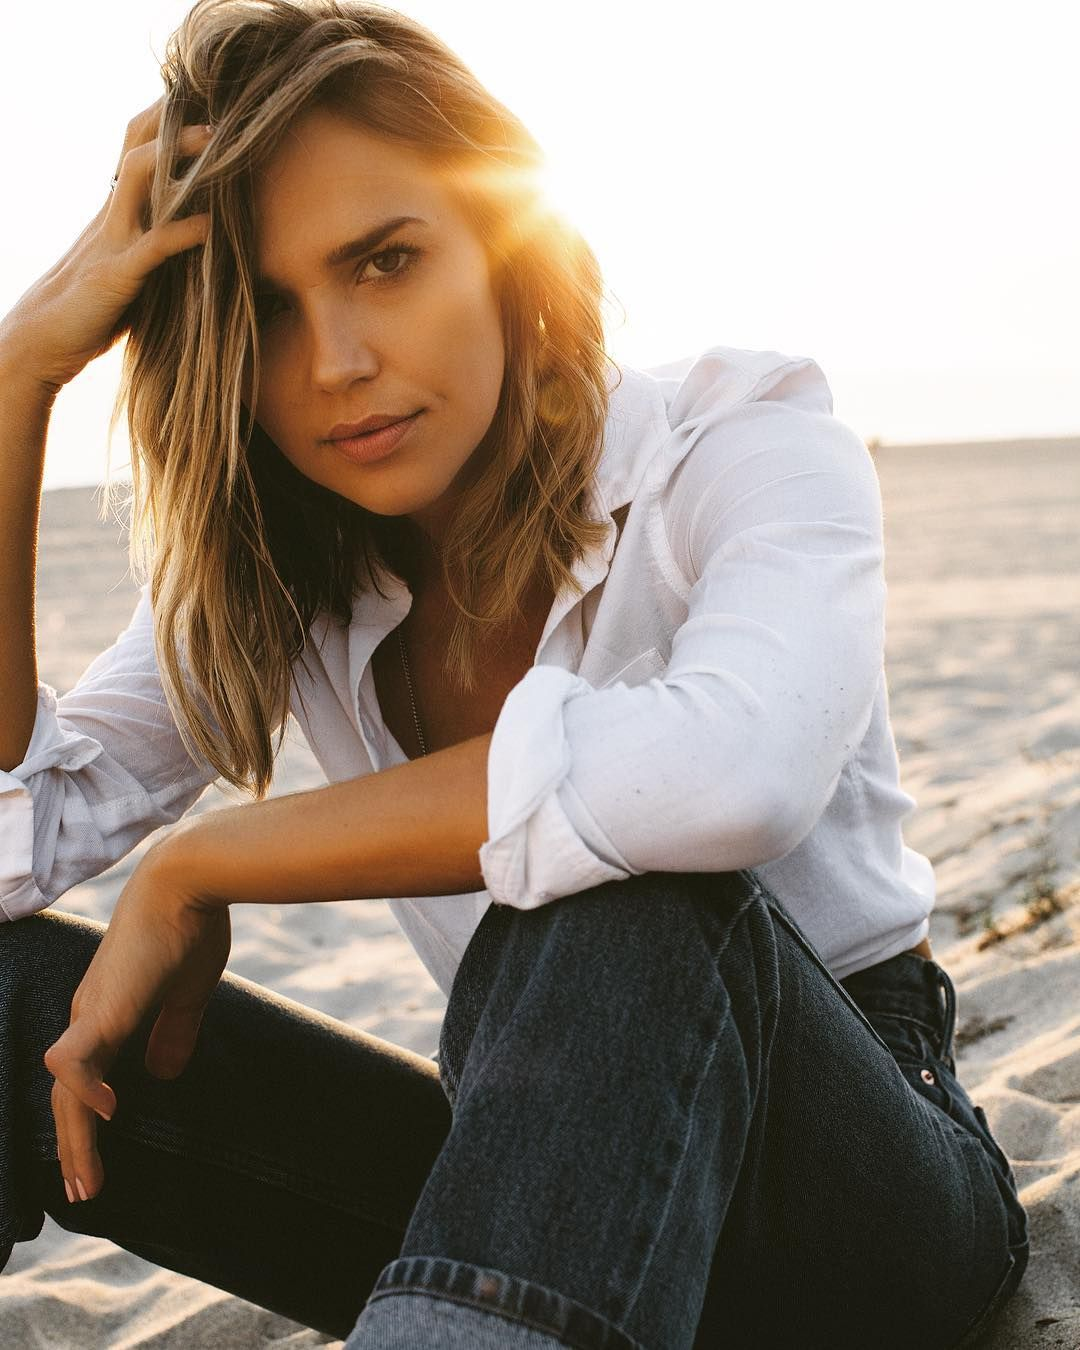 Arielle Kebbel On Instagram Many Of You Were Asking Me About The